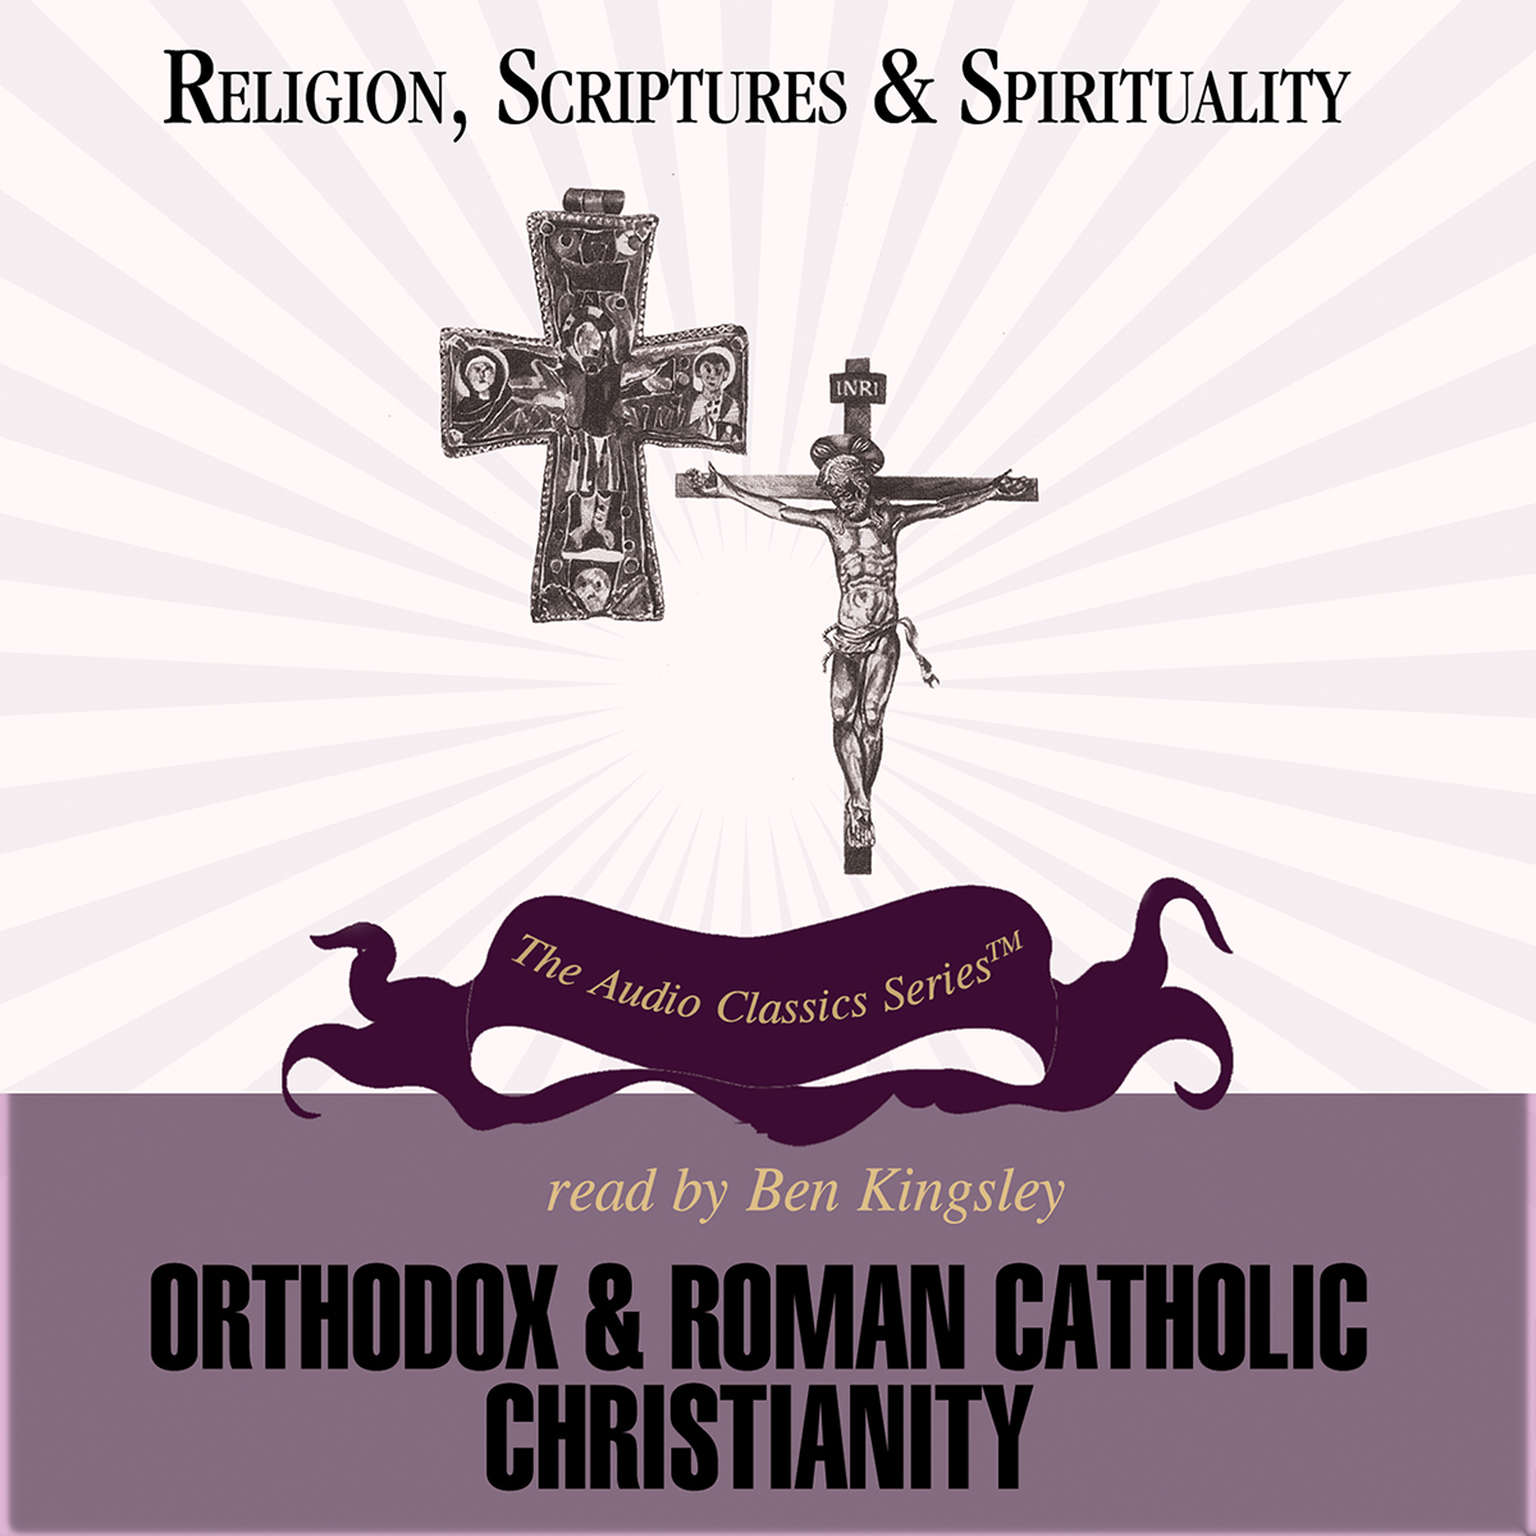 christianity and roman catholic Complete a survey designed for roman catholic christians in it, the catholic church reiterated its desire for closer relations with the other branches of christianity and also outlined five important subjects that are considered important for doctrinal agreement.